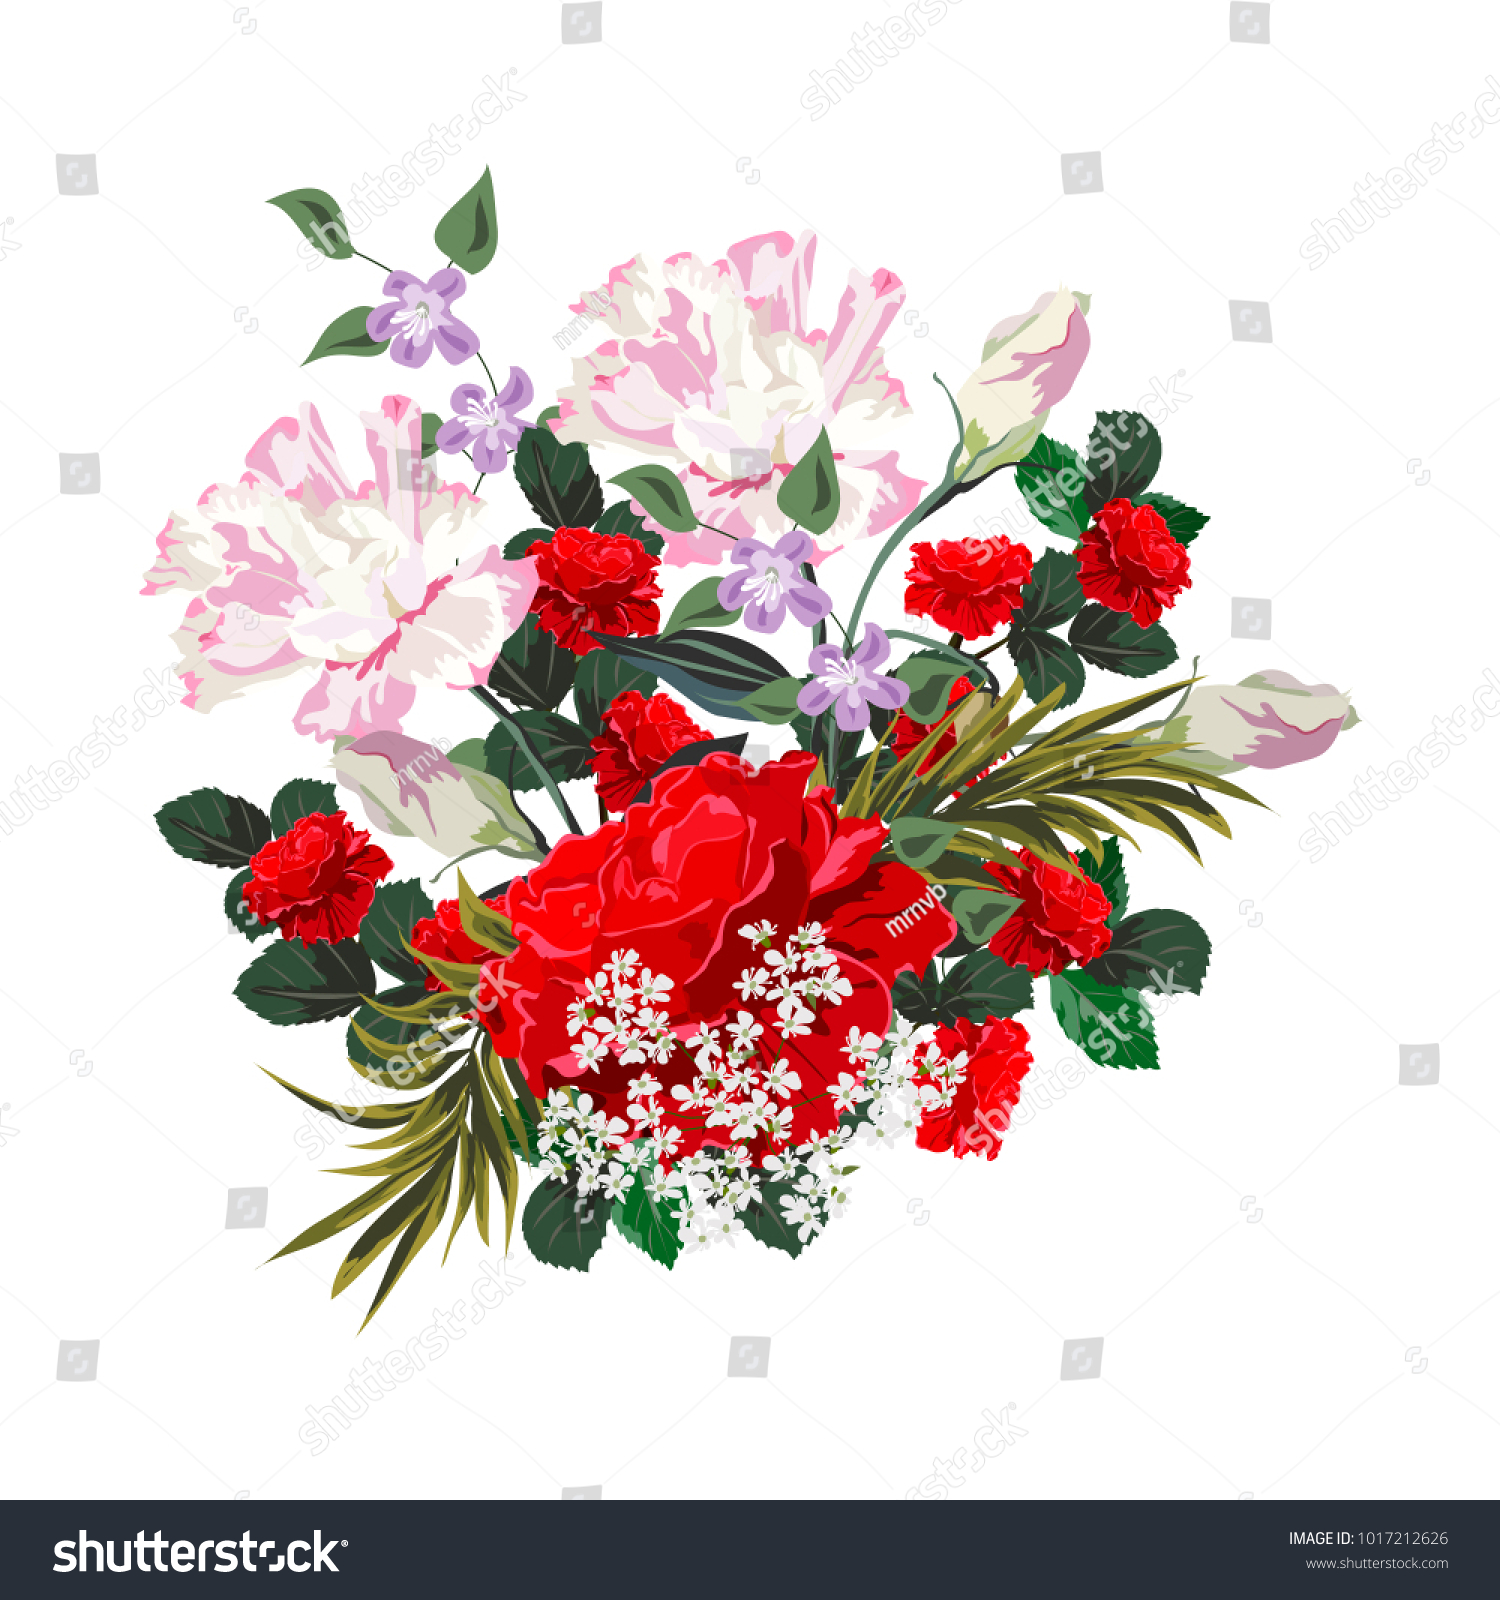 Bouquet of red roses. Decor elements for greeting cards, wedding ...